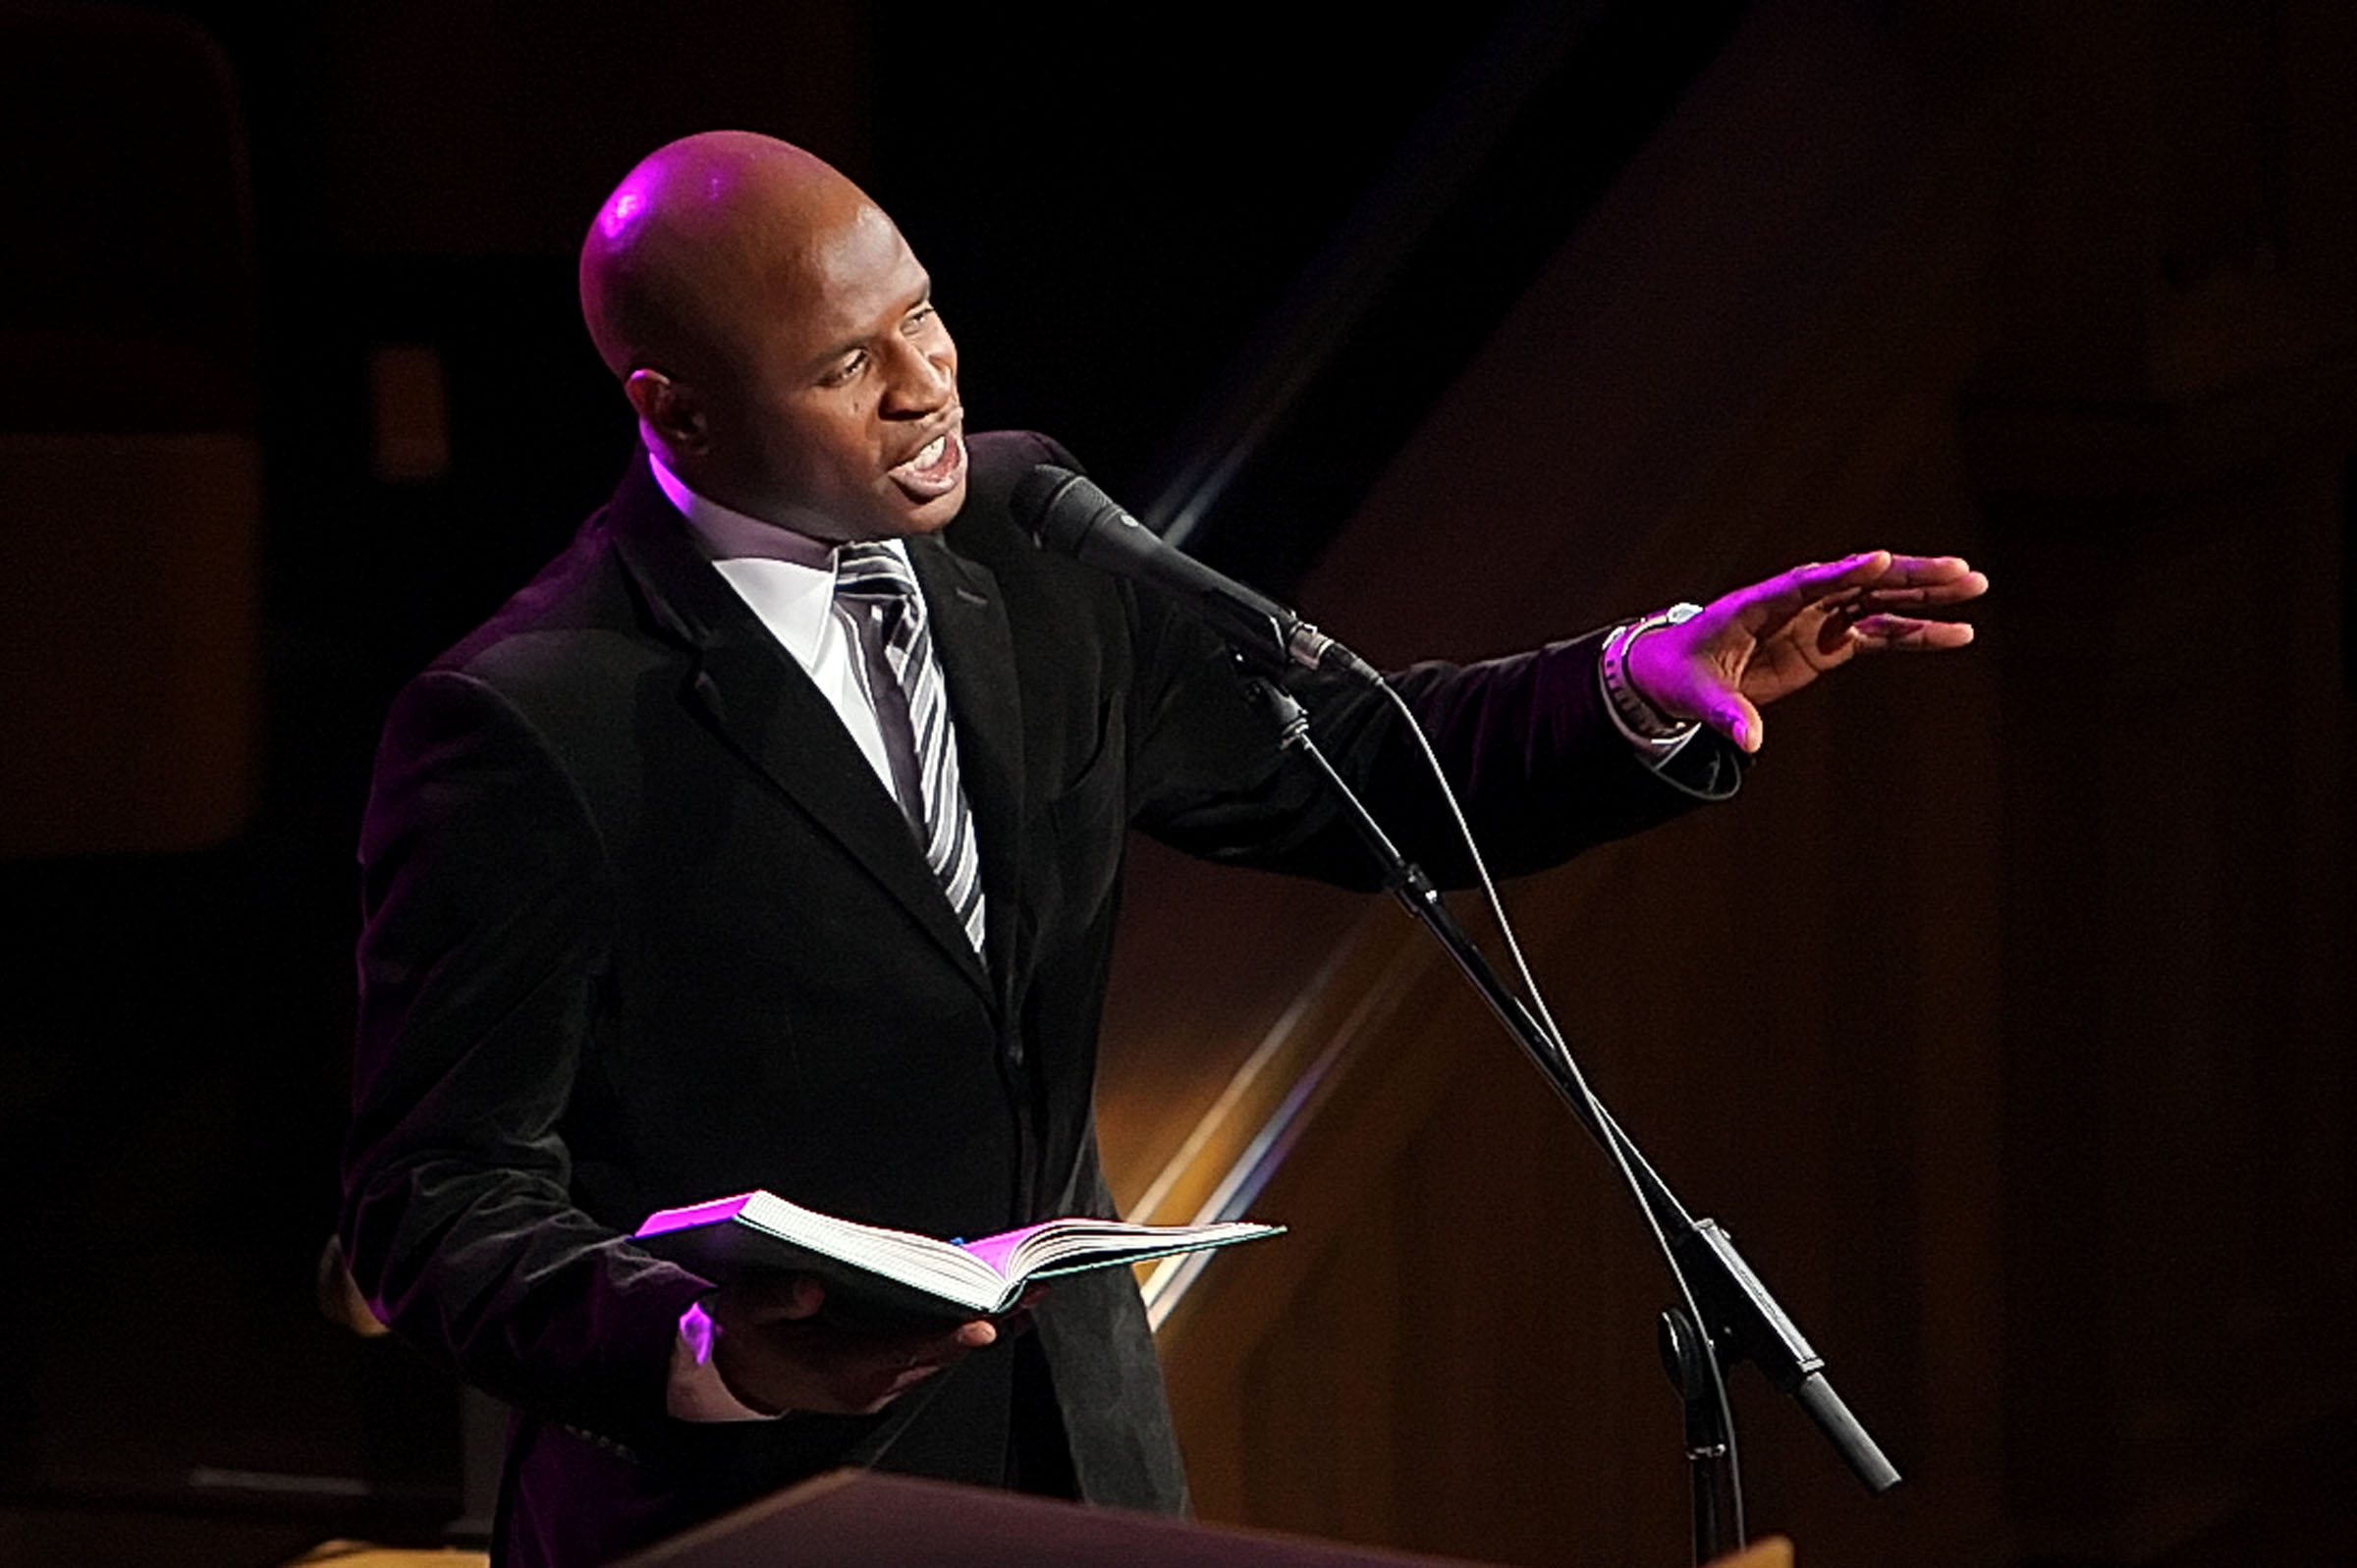 Alex Boyé sings during the commemoration of the revelation on the priesthood being available to all worthy men in the Tabernacle in Salt Lake City June 8, 2008.